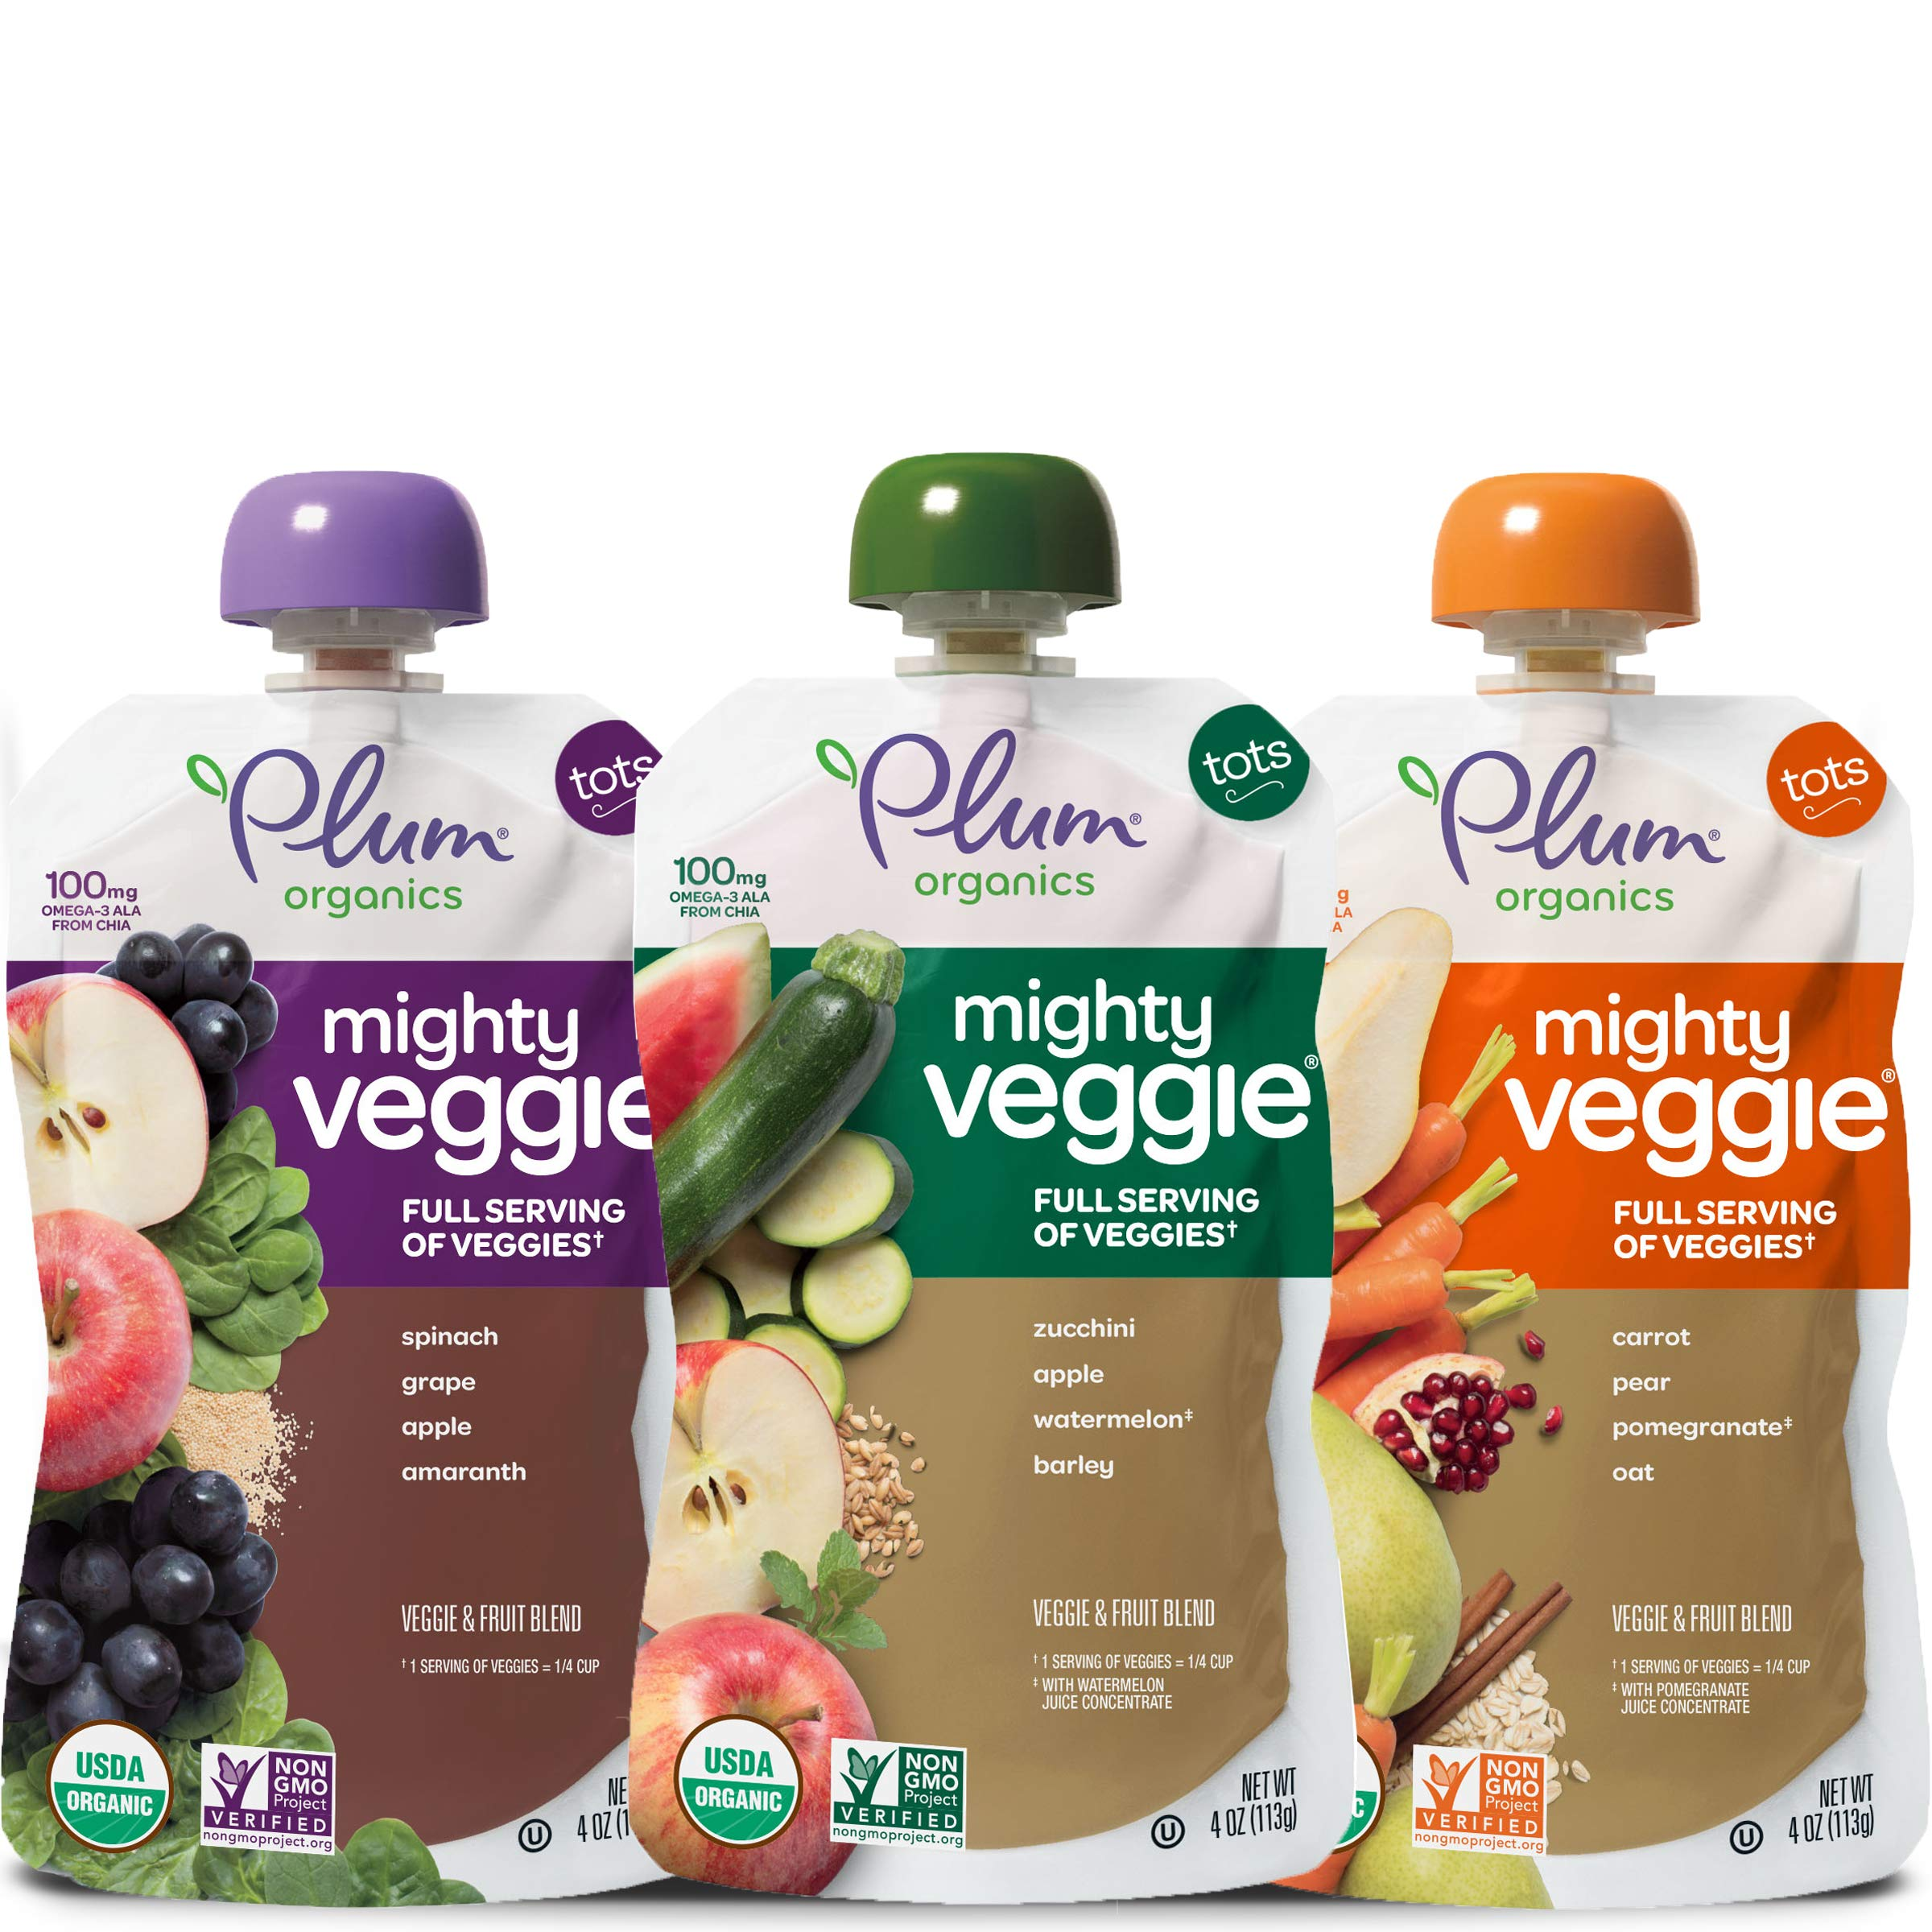 Plum Organics Mighty Veggie, Organic Toddler Food, Variety Pack, 4 ounce pouch (Pack of 18)'' (Packaging May Vary) by Plum Organics